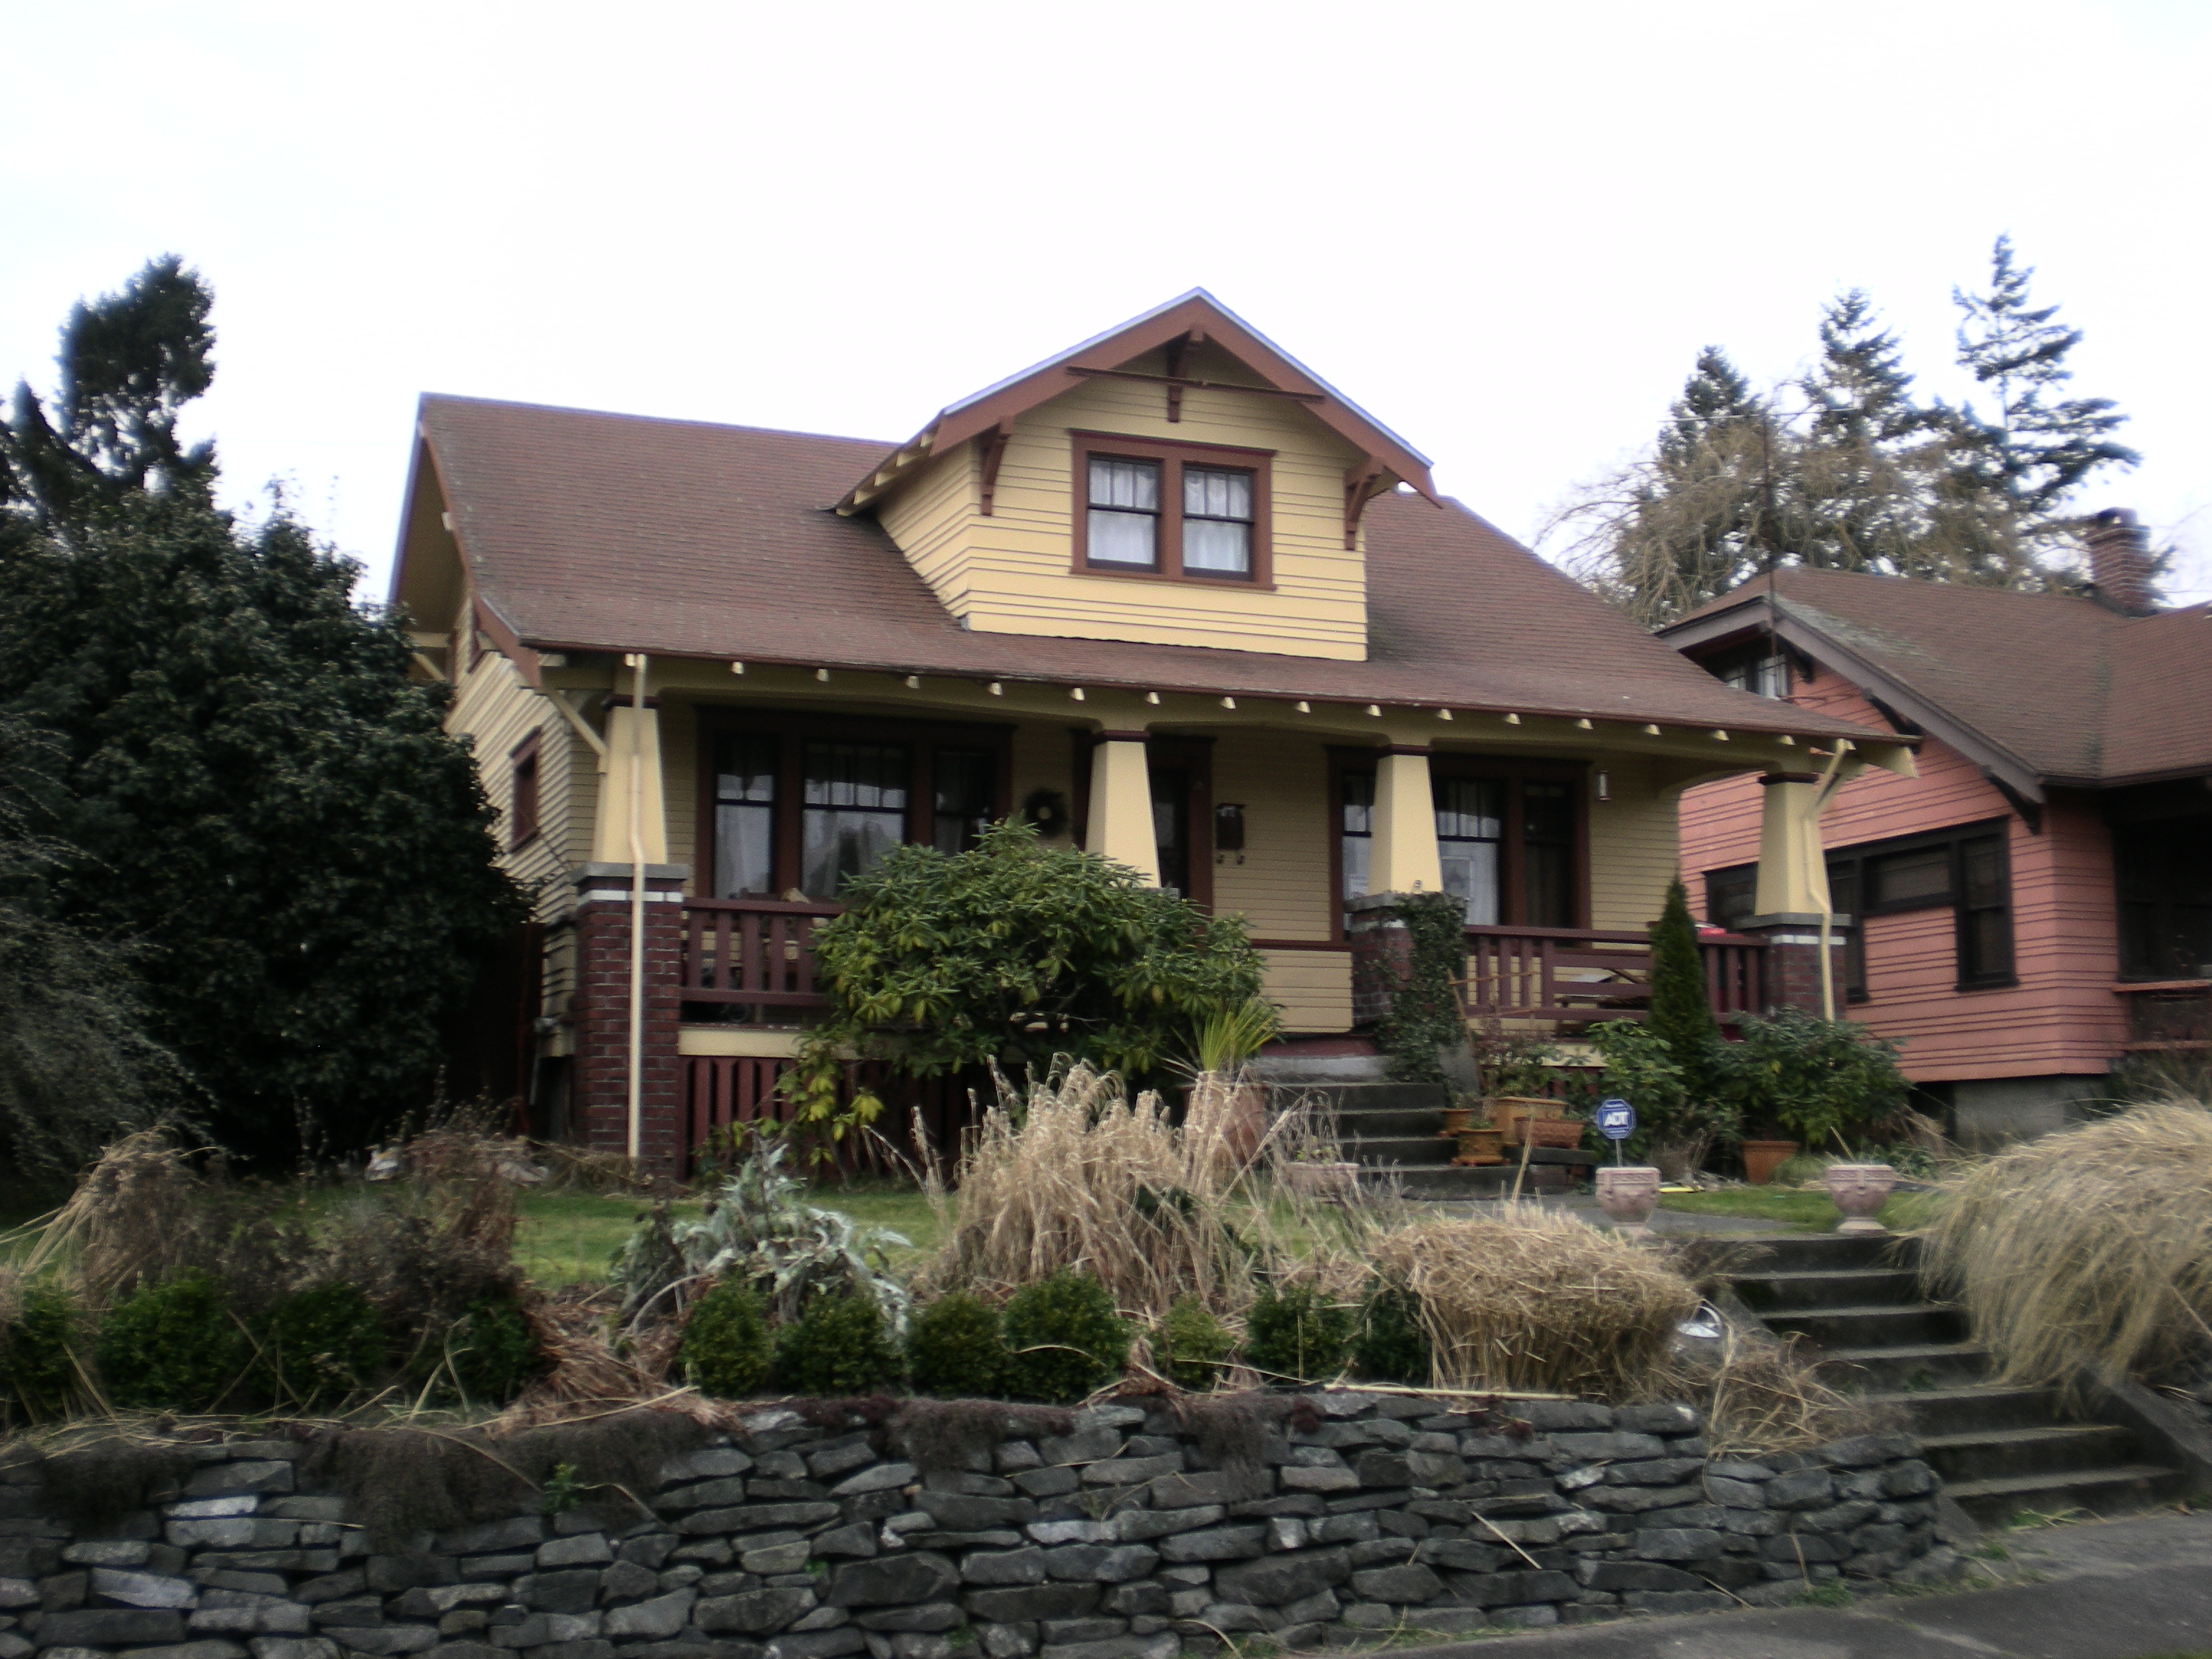 File:House at 2314 Ainsworth.jpg